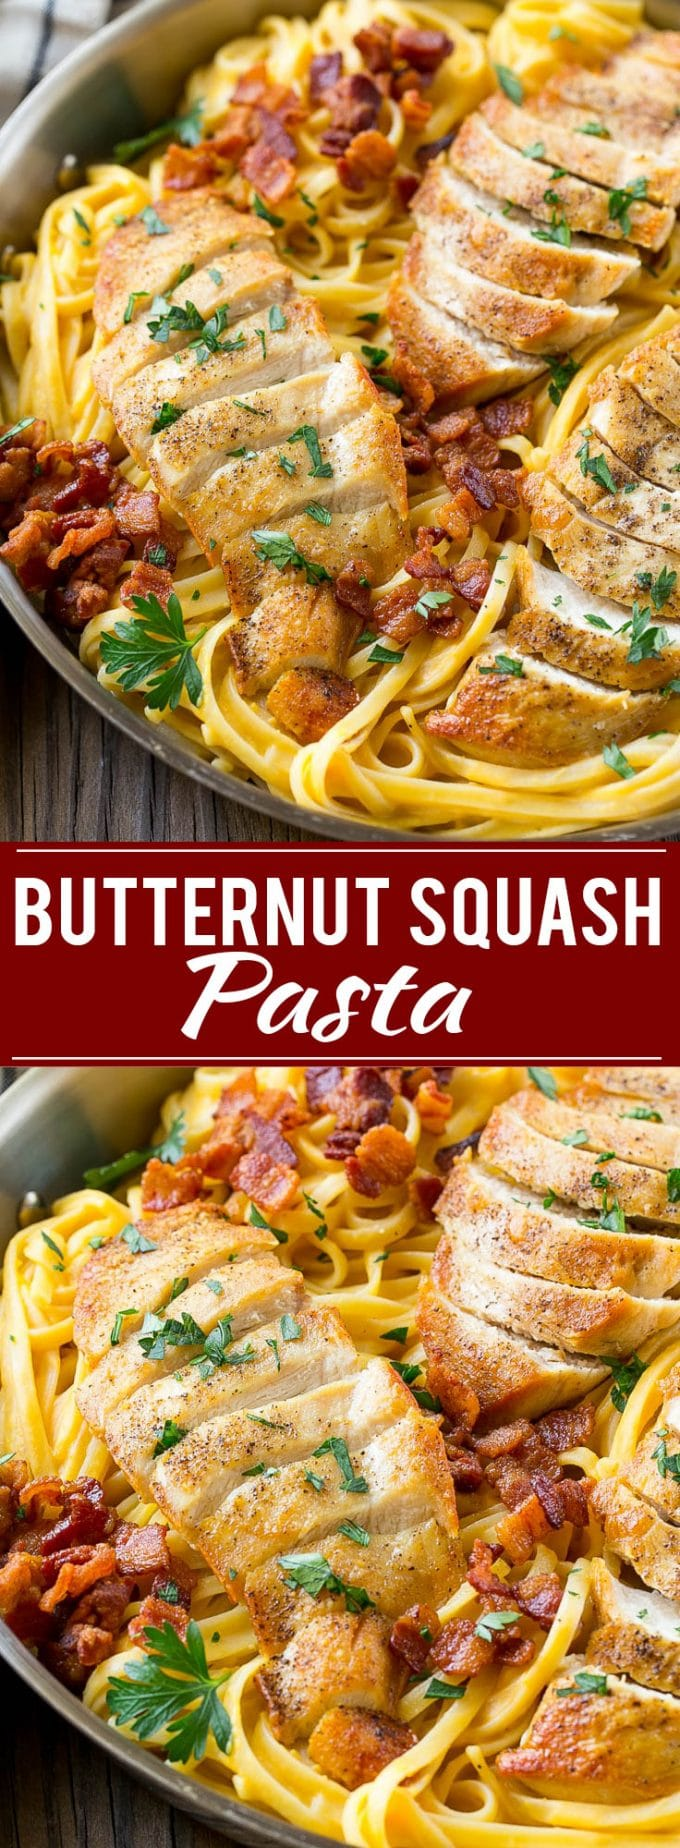 Butternut Squash Pasta with Chicken Recipe | Chicken Pasta Recipe | Butternut Squash Recipe | Easy Dinner Recipe | Pasta Recipe